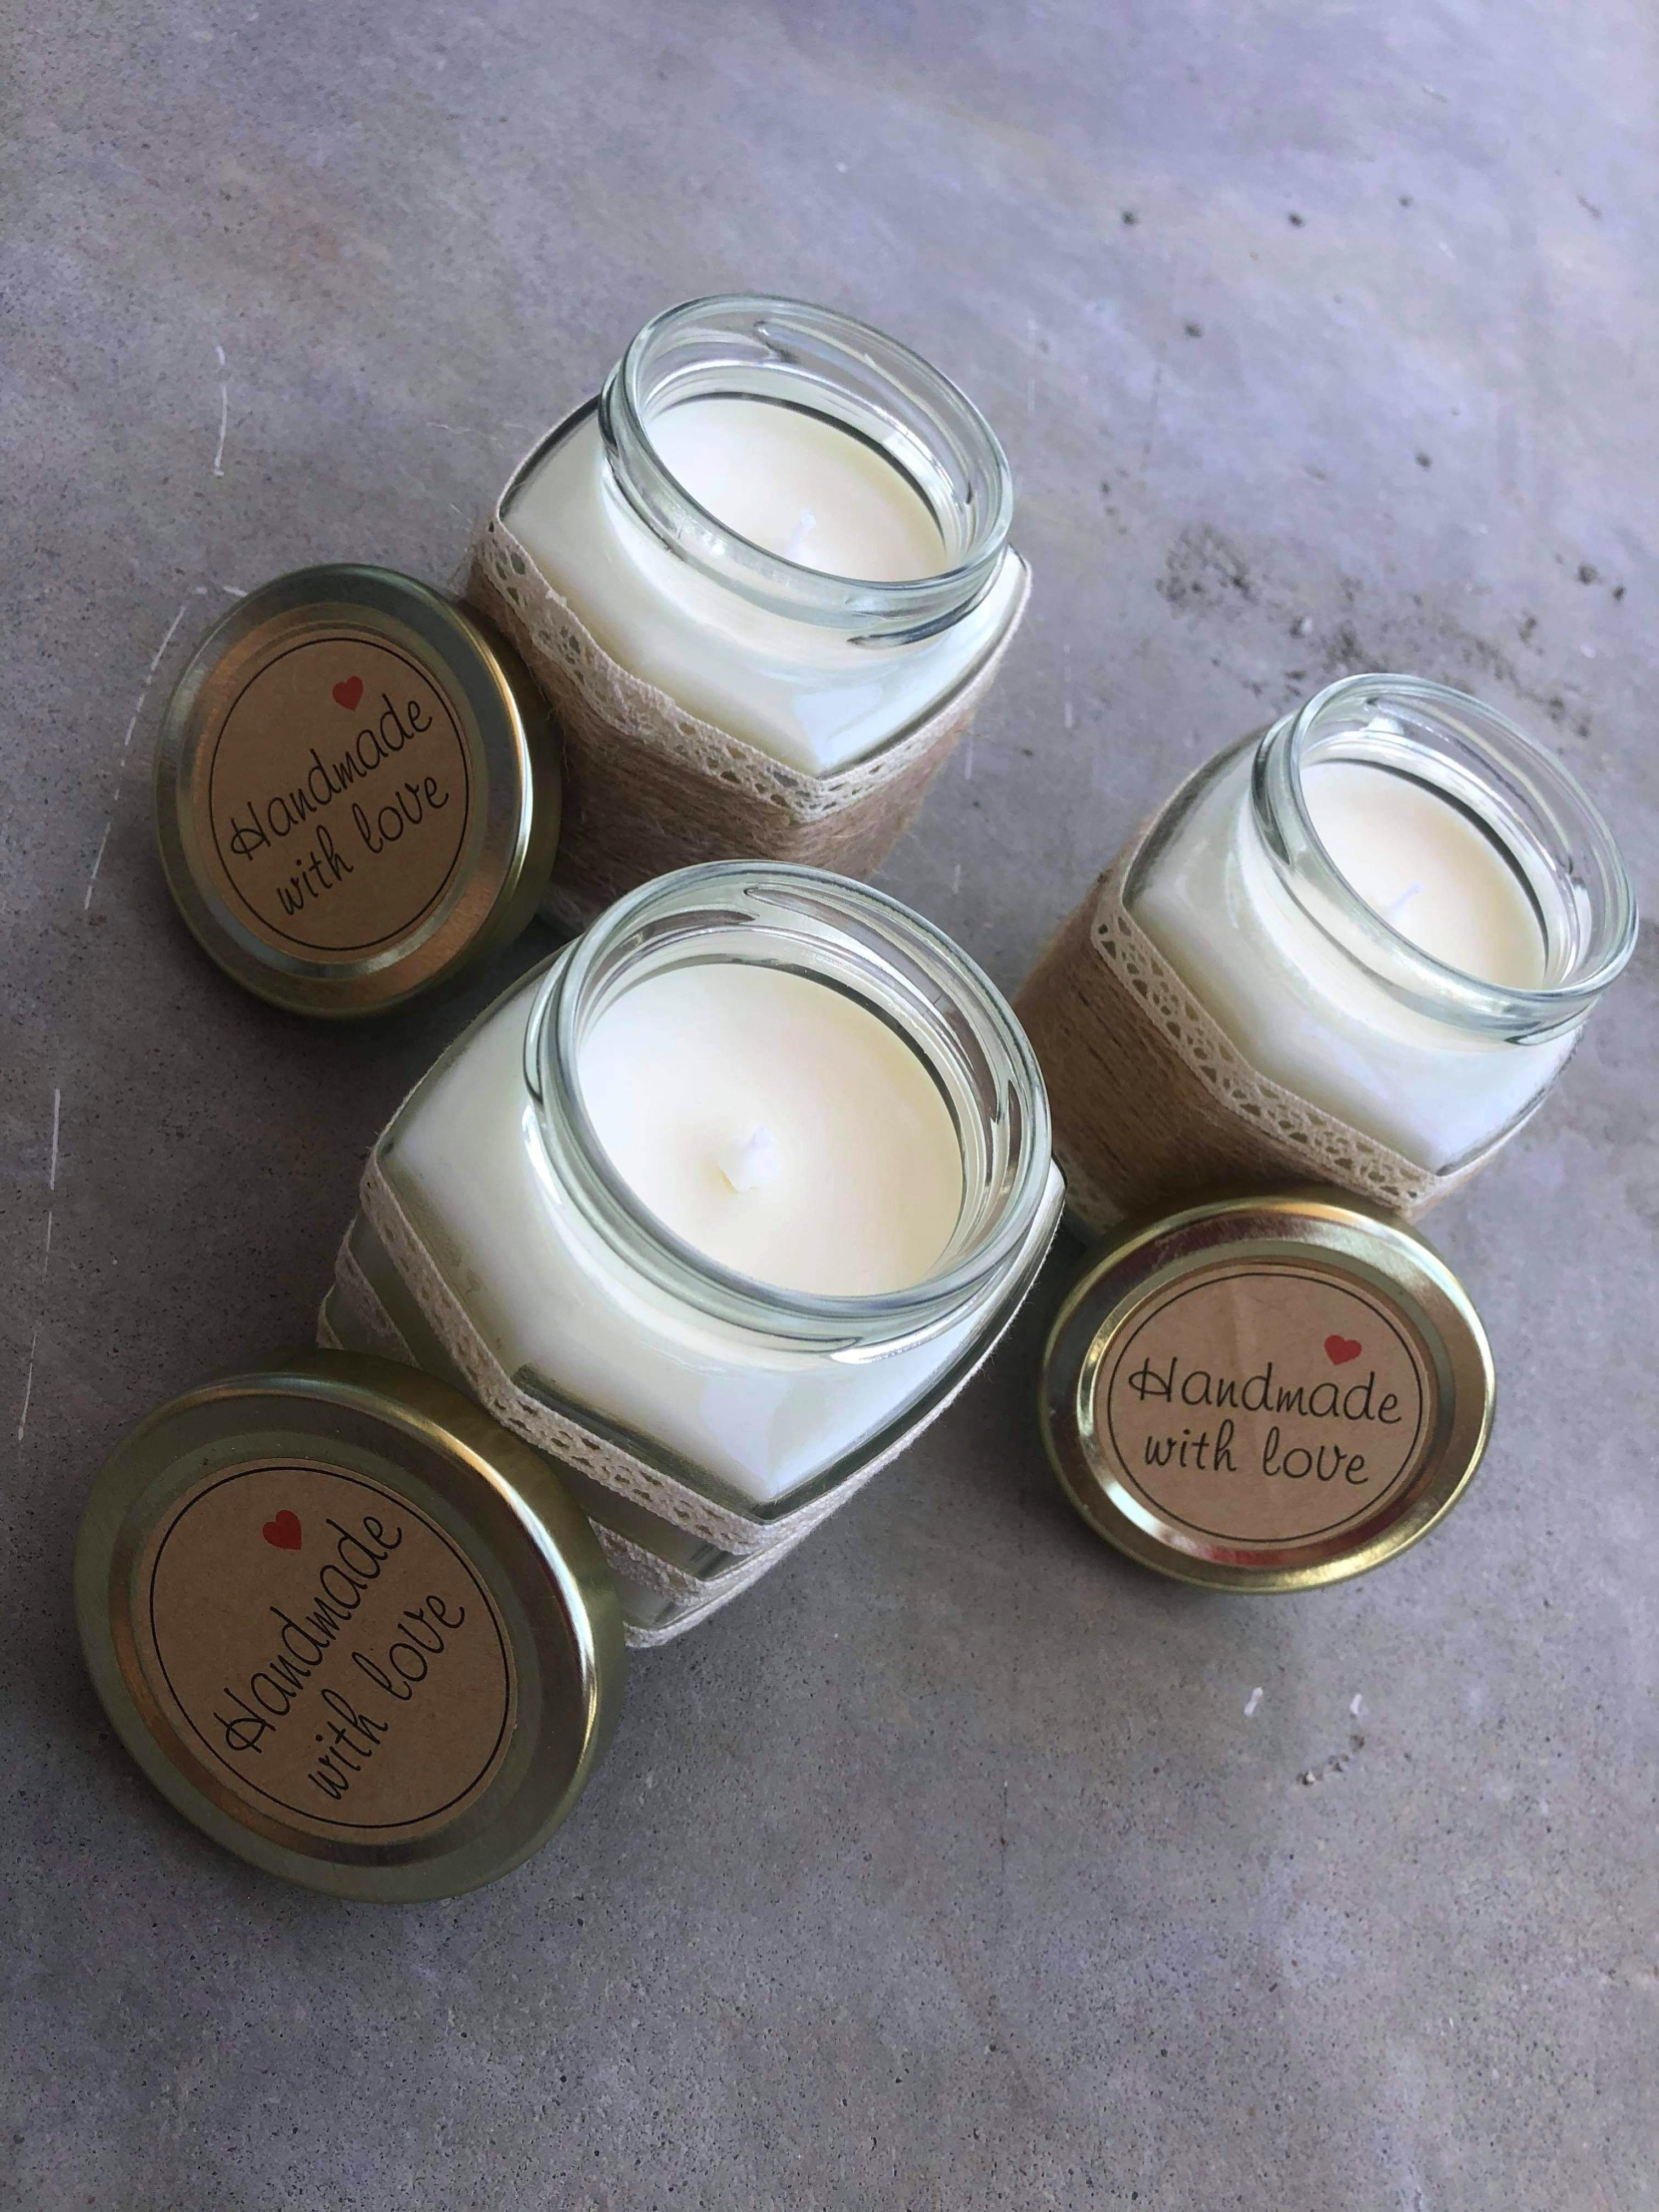 PURE SOY CANDLES, HANDMADE IN VINTAGE VESSELS